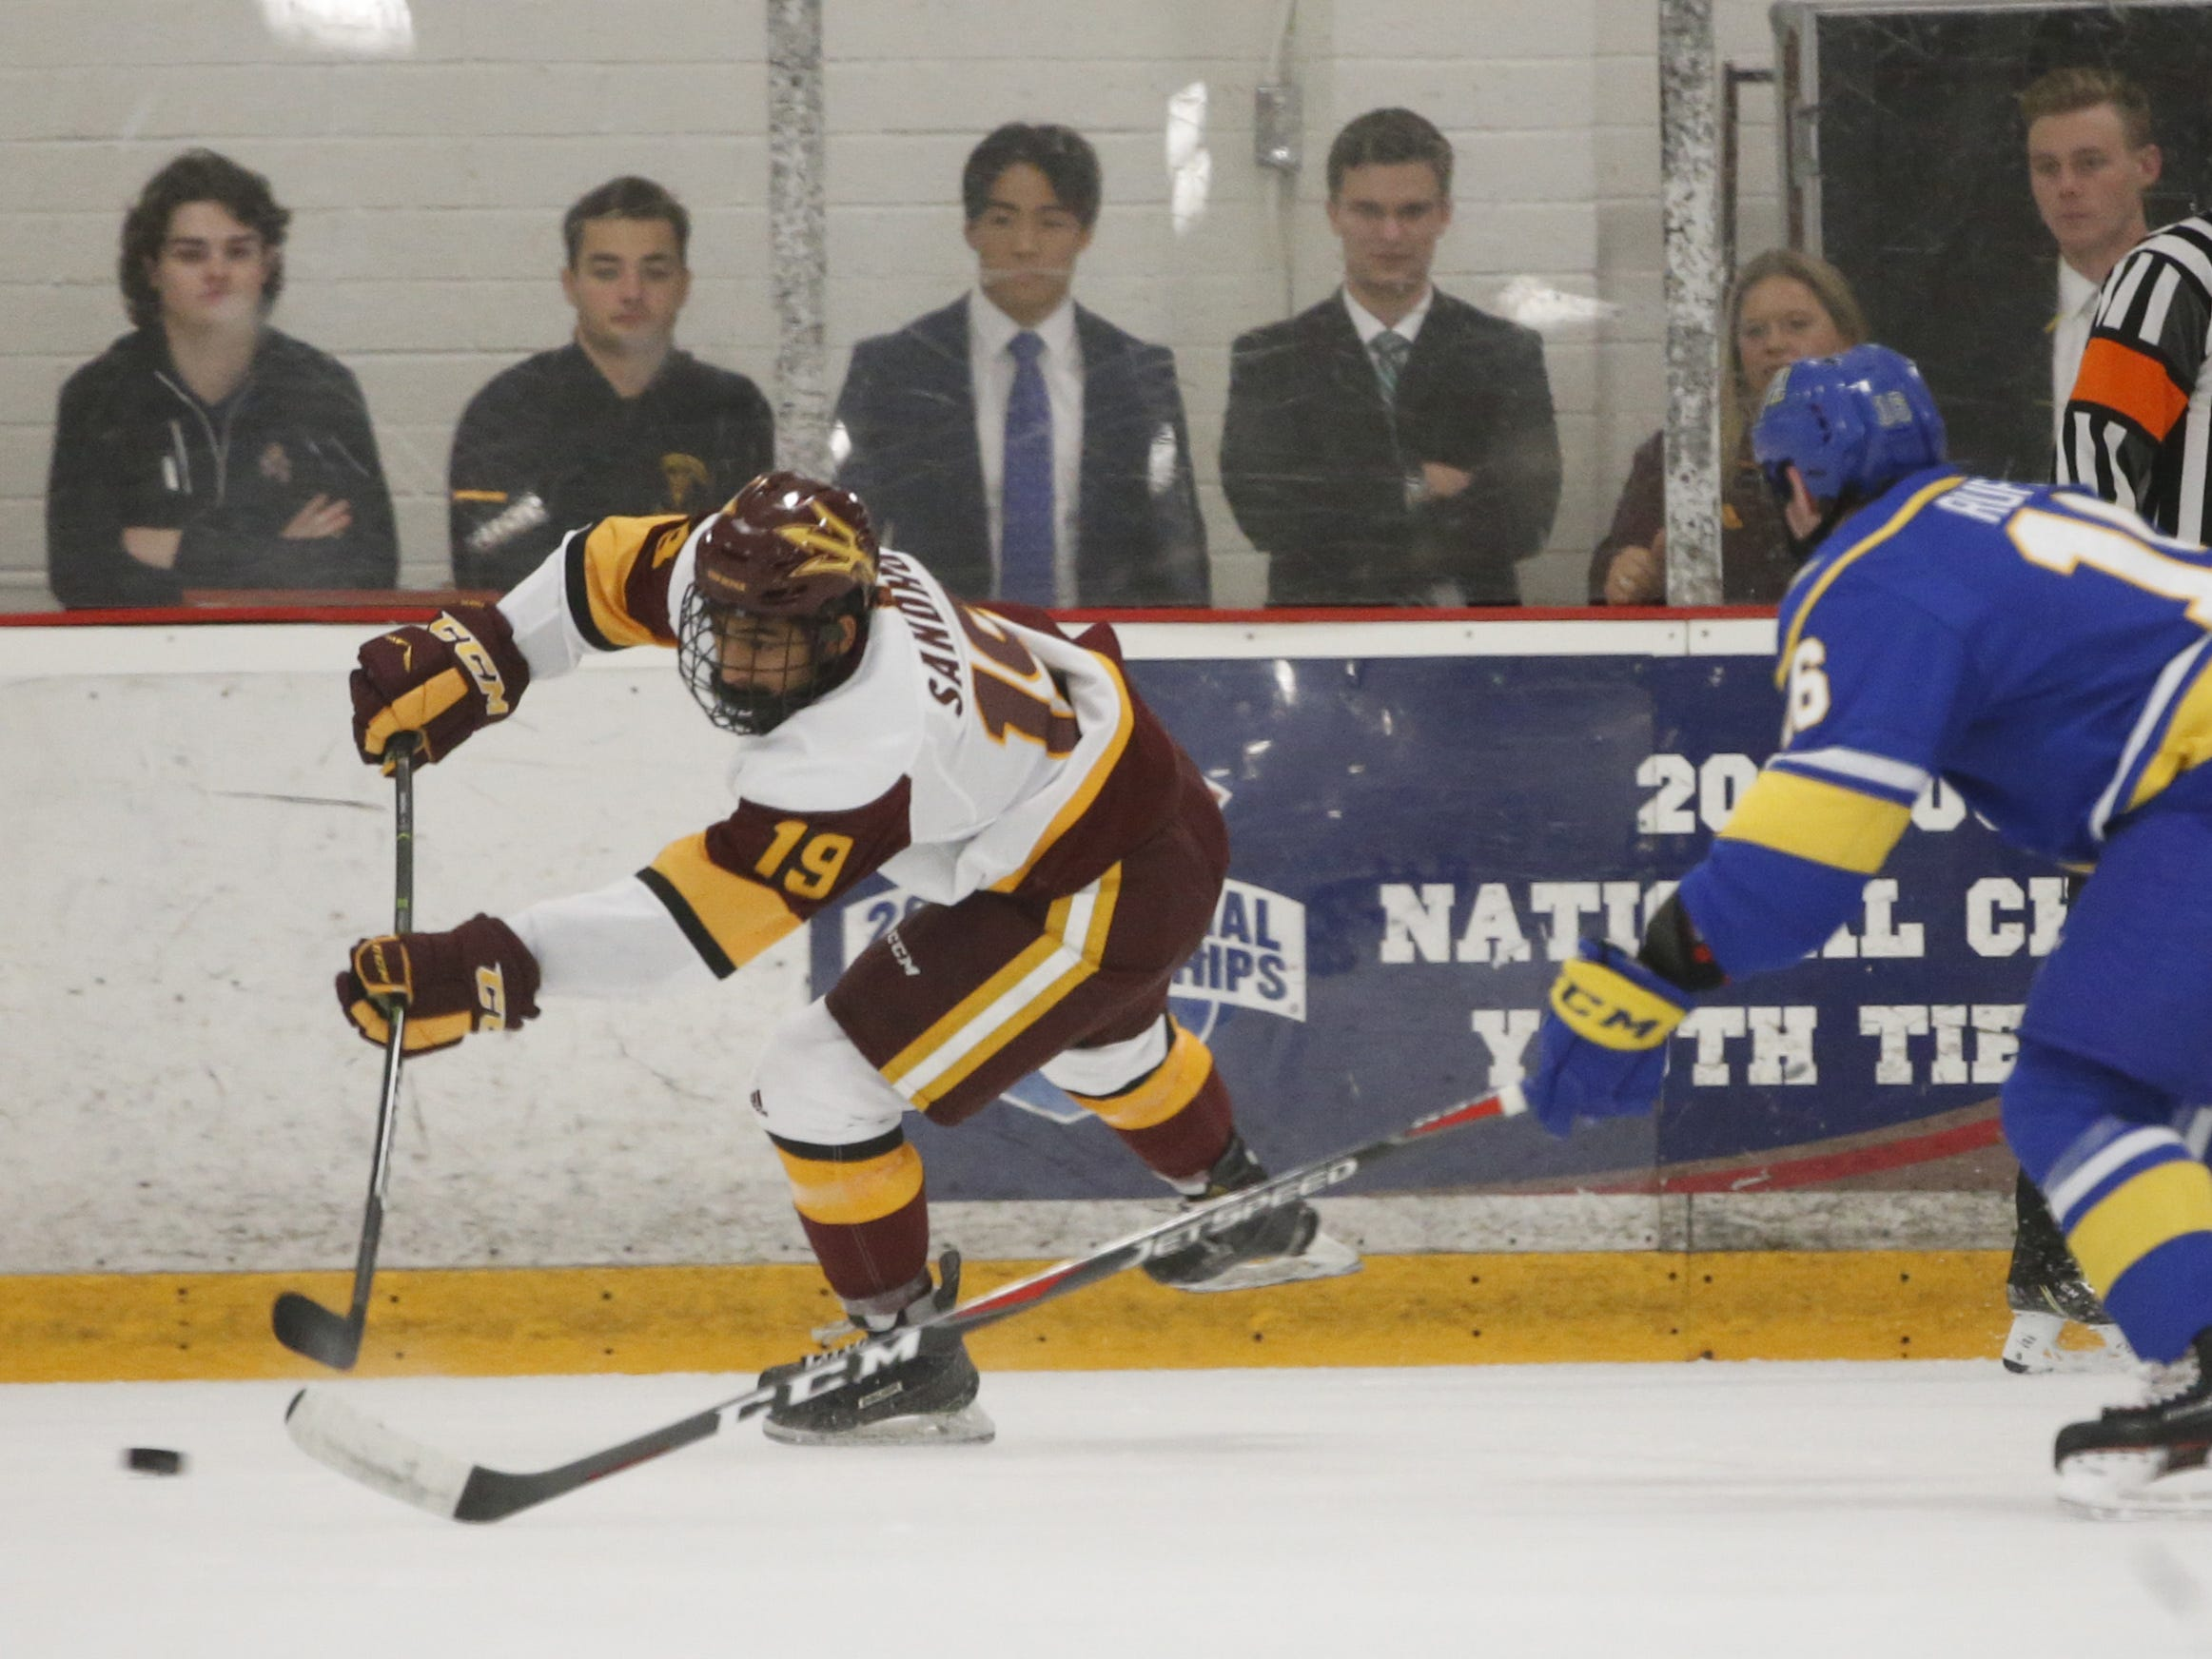 ASU's Jordan Sandhu (19) passes against Alaska's Sam Ruffin (16) at Oceanside Ice Arena in Tempe, Ariz. on October 7, 2018.